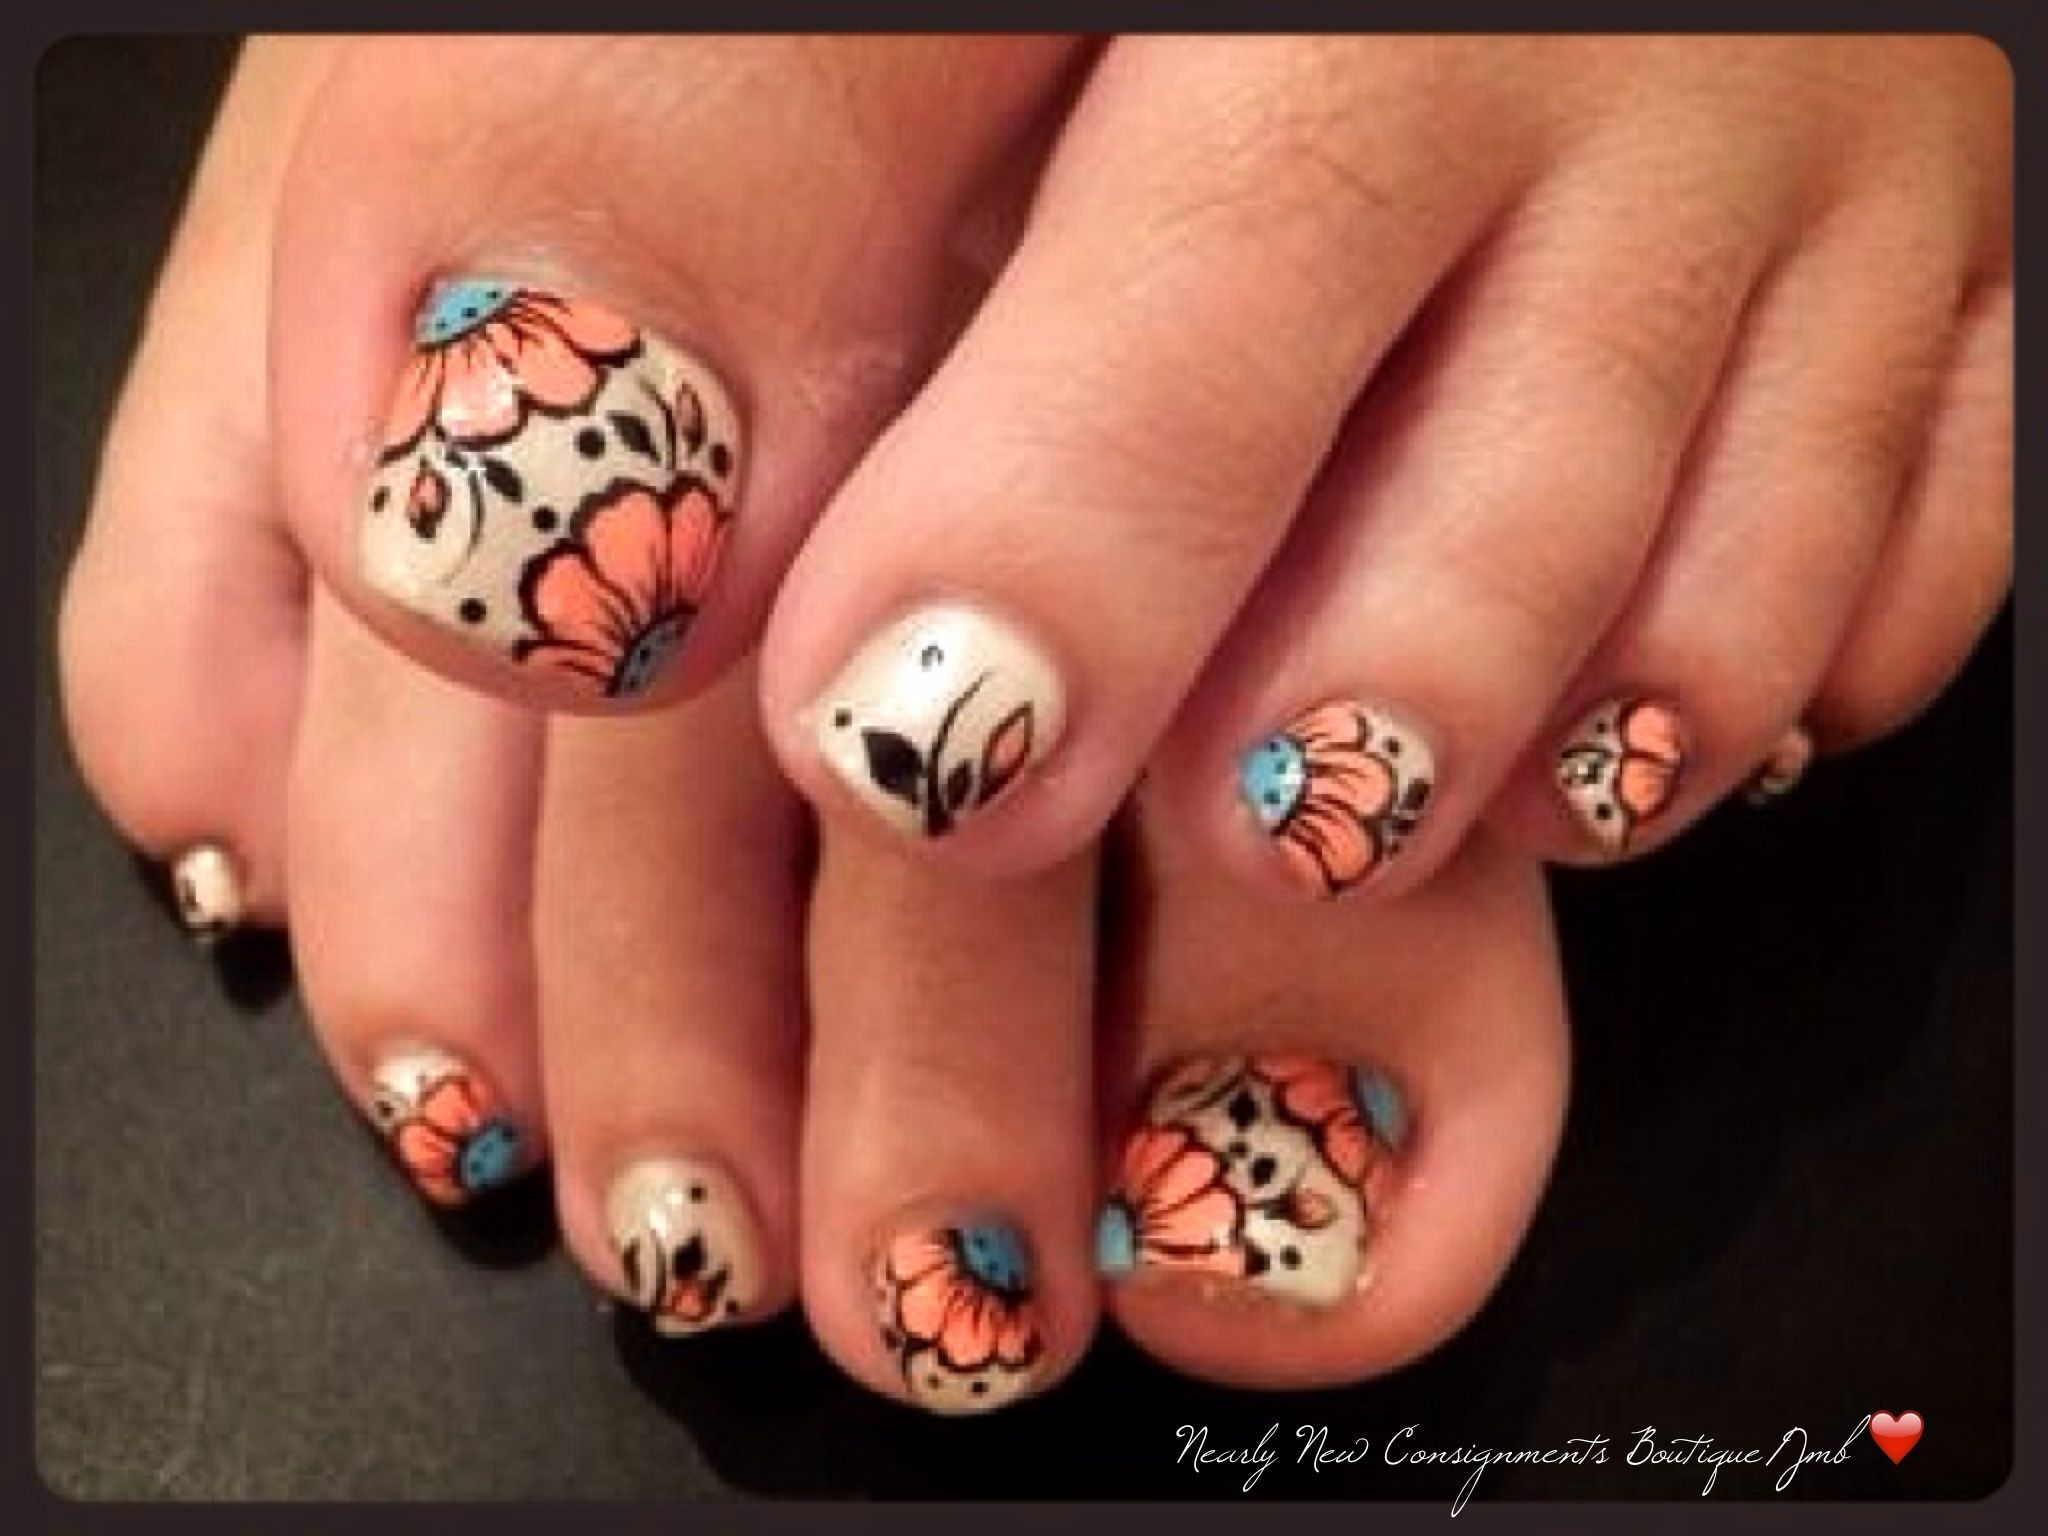 Flower-child toes   : Fun Times At Nearly New Consignments Boutique ...